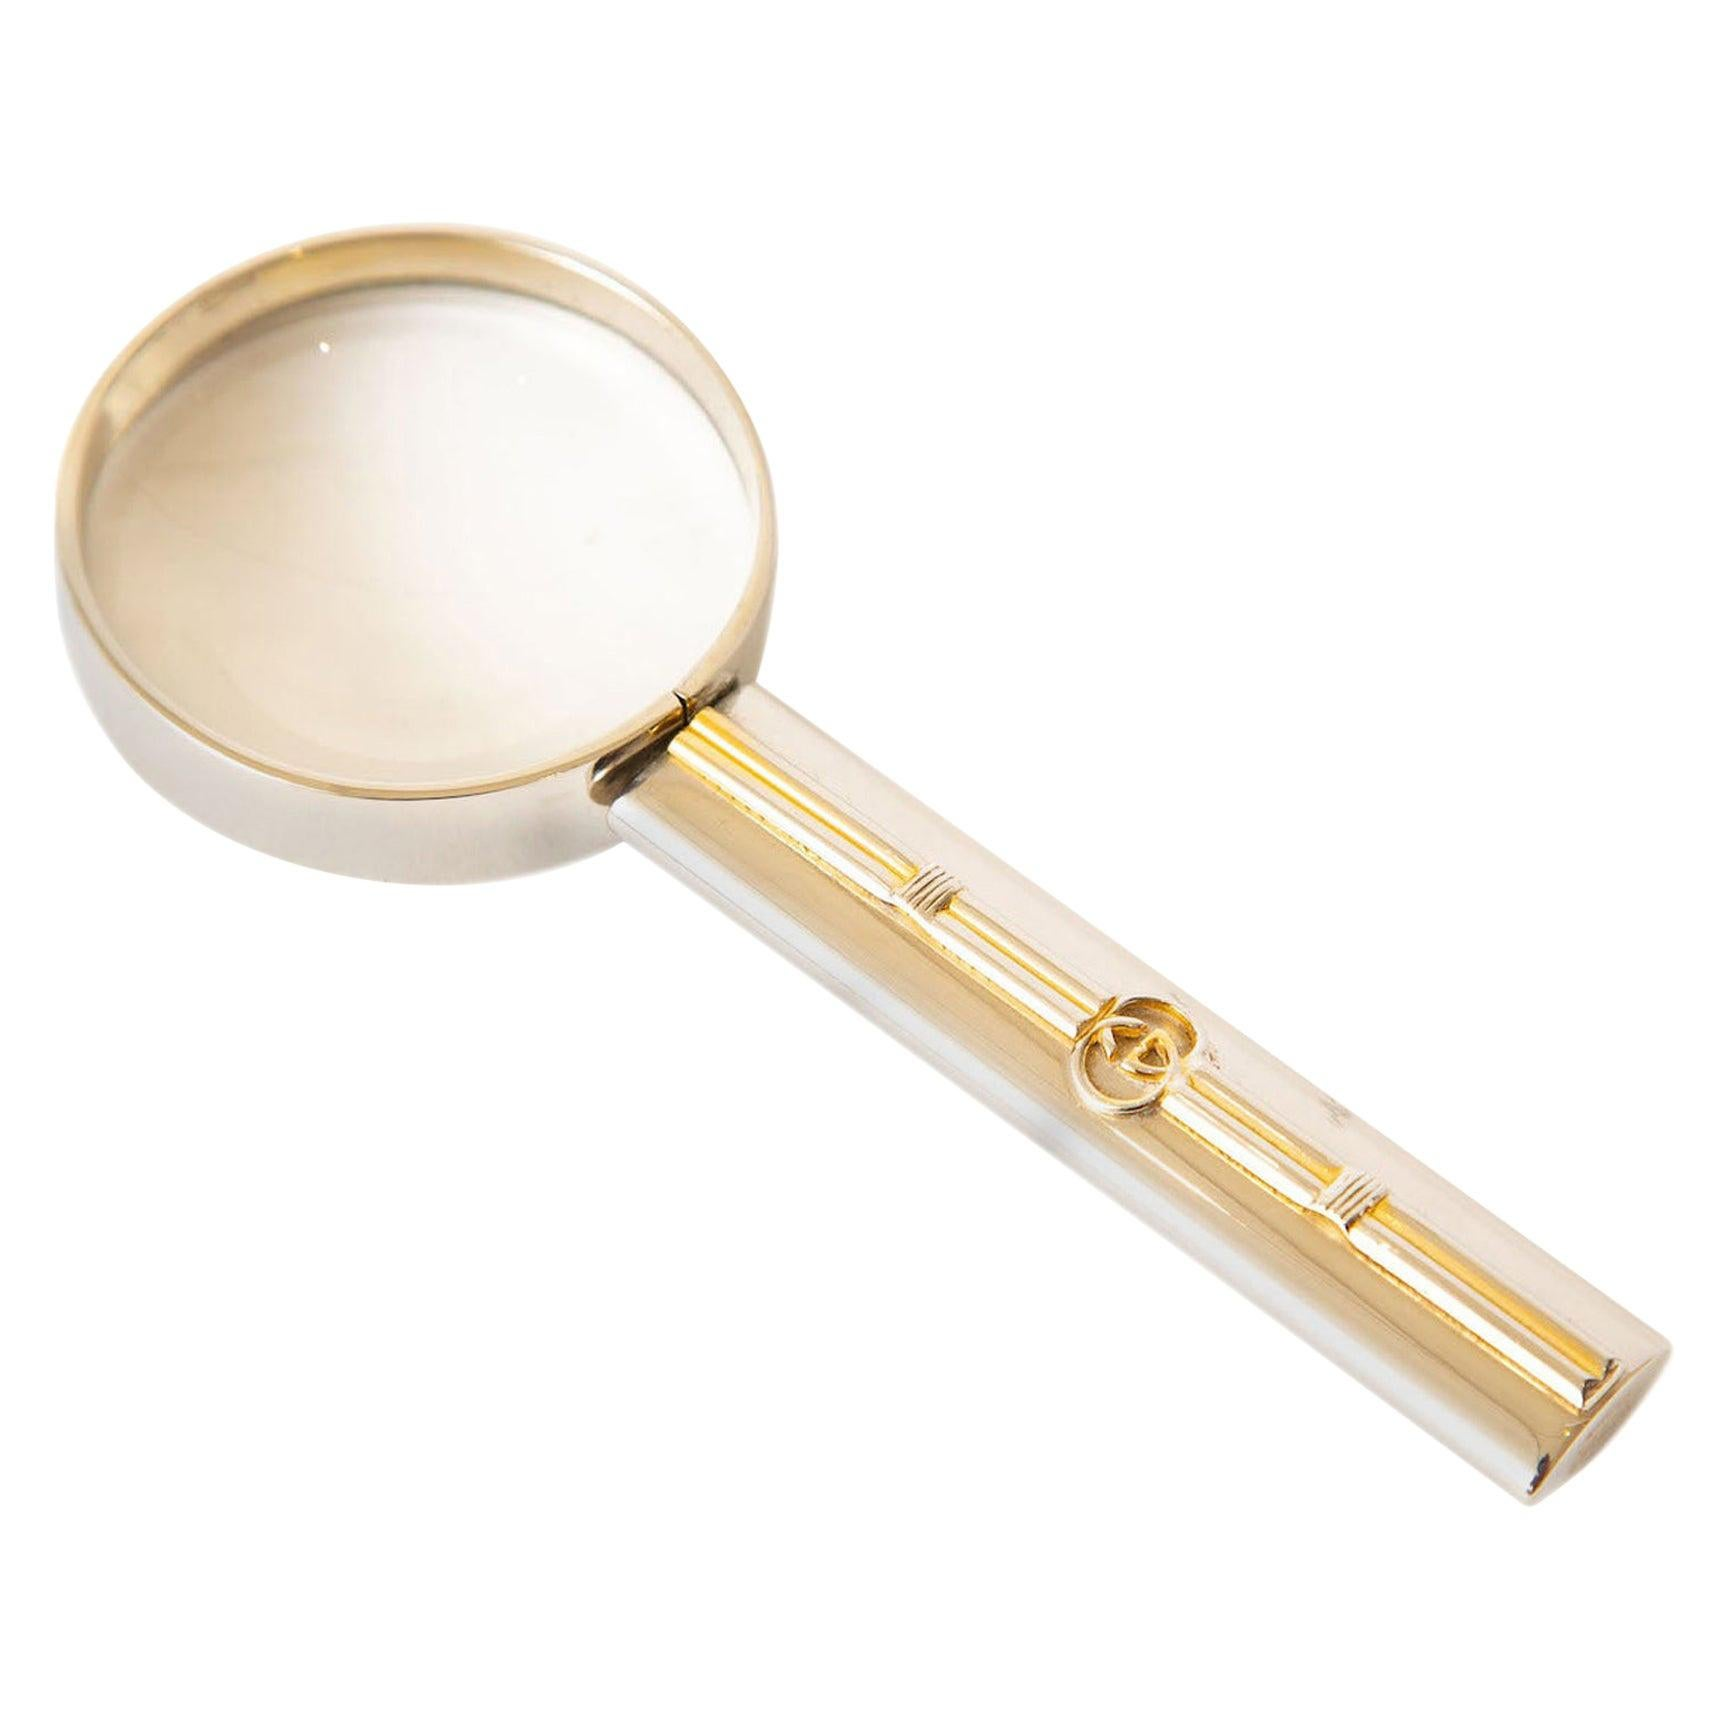 Gucci Desk Magnifier Silver-Plate with Gold Vintage Desk Accessory